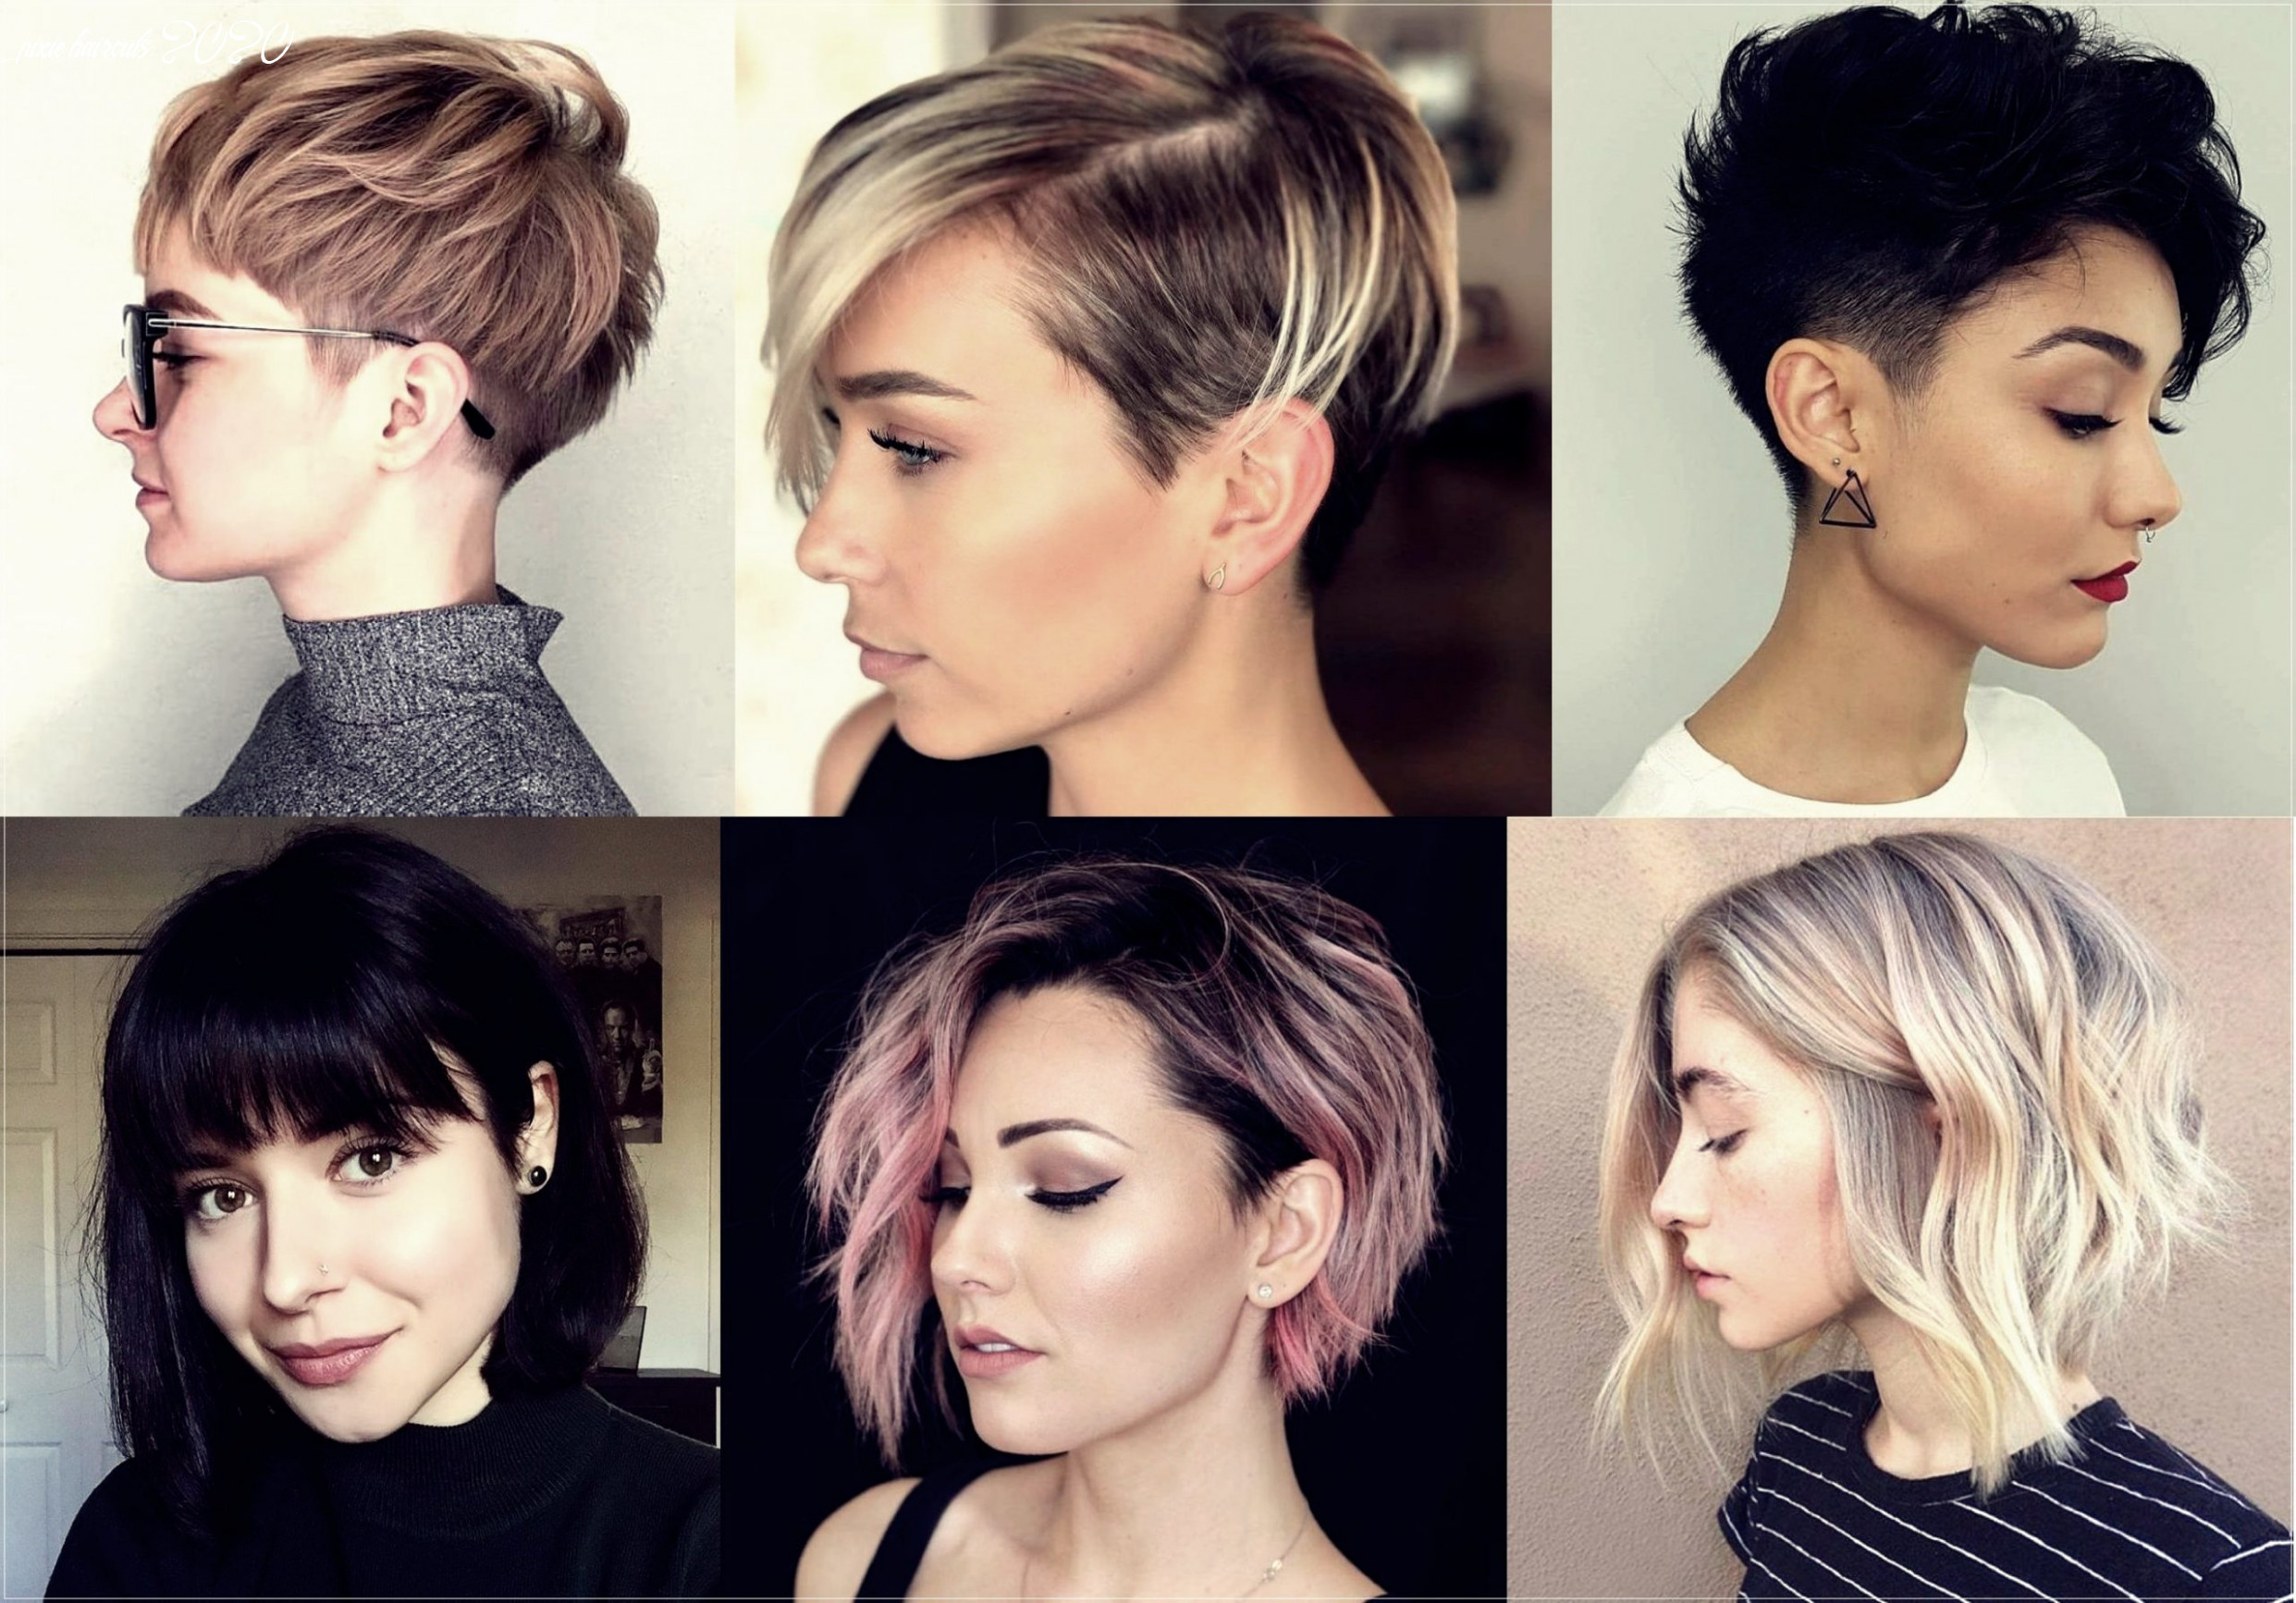 Short haircuts 9: 9 photos and trends |